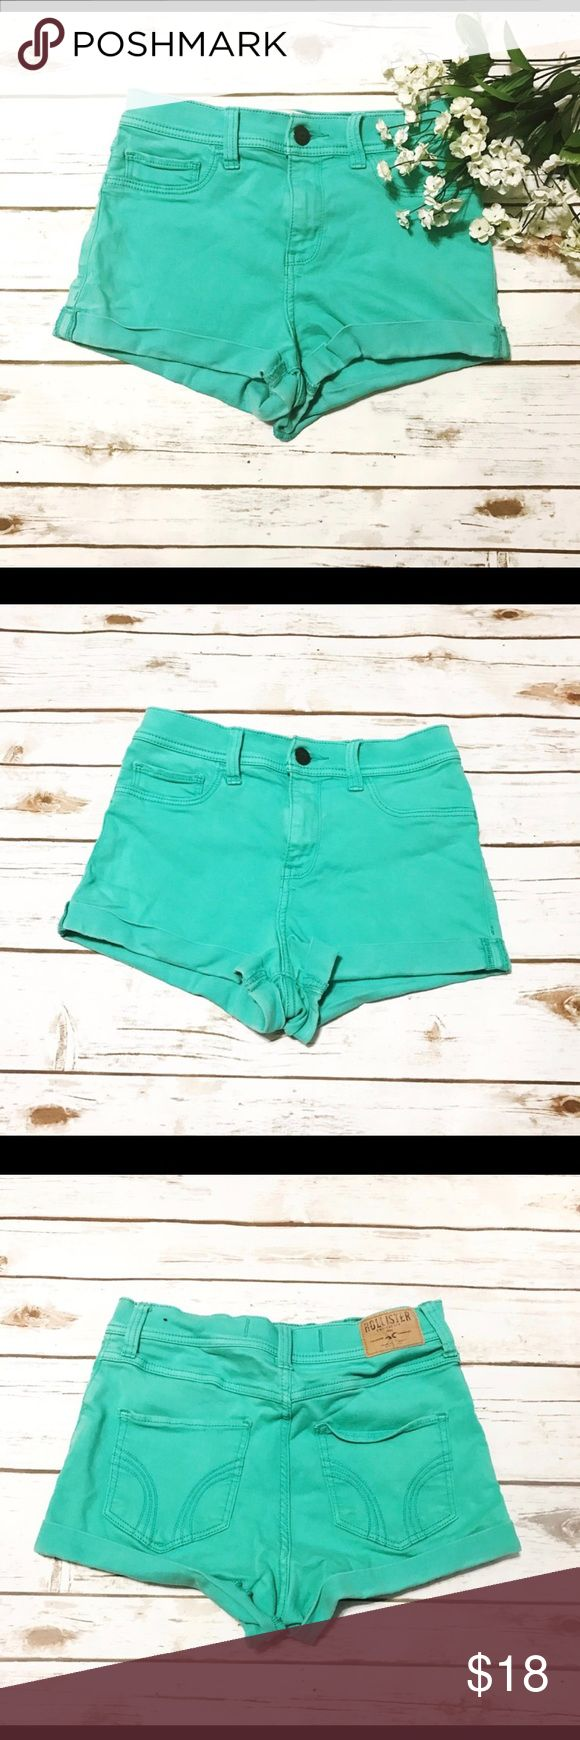 Hollister Mint Green Shorts Hollister mint green shorts. Size 3 w26. In great condition. Let me know if you have any questions! Hollister Shorts